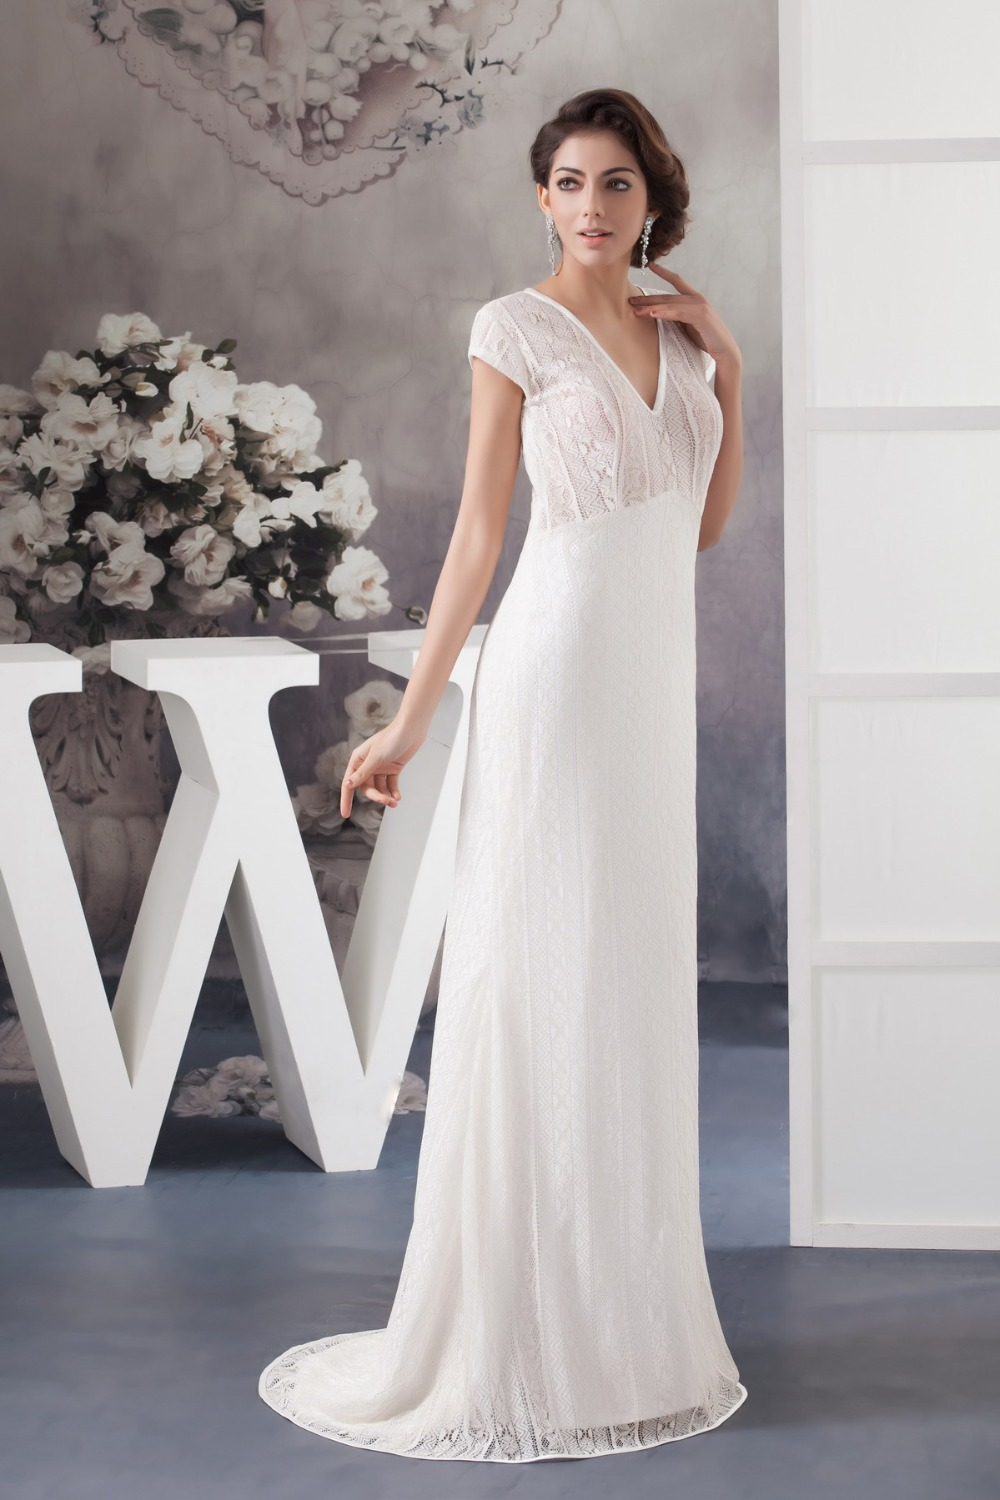 Wedding Dresses For The Mature Bride : Wedding dresses for older brides cocktail